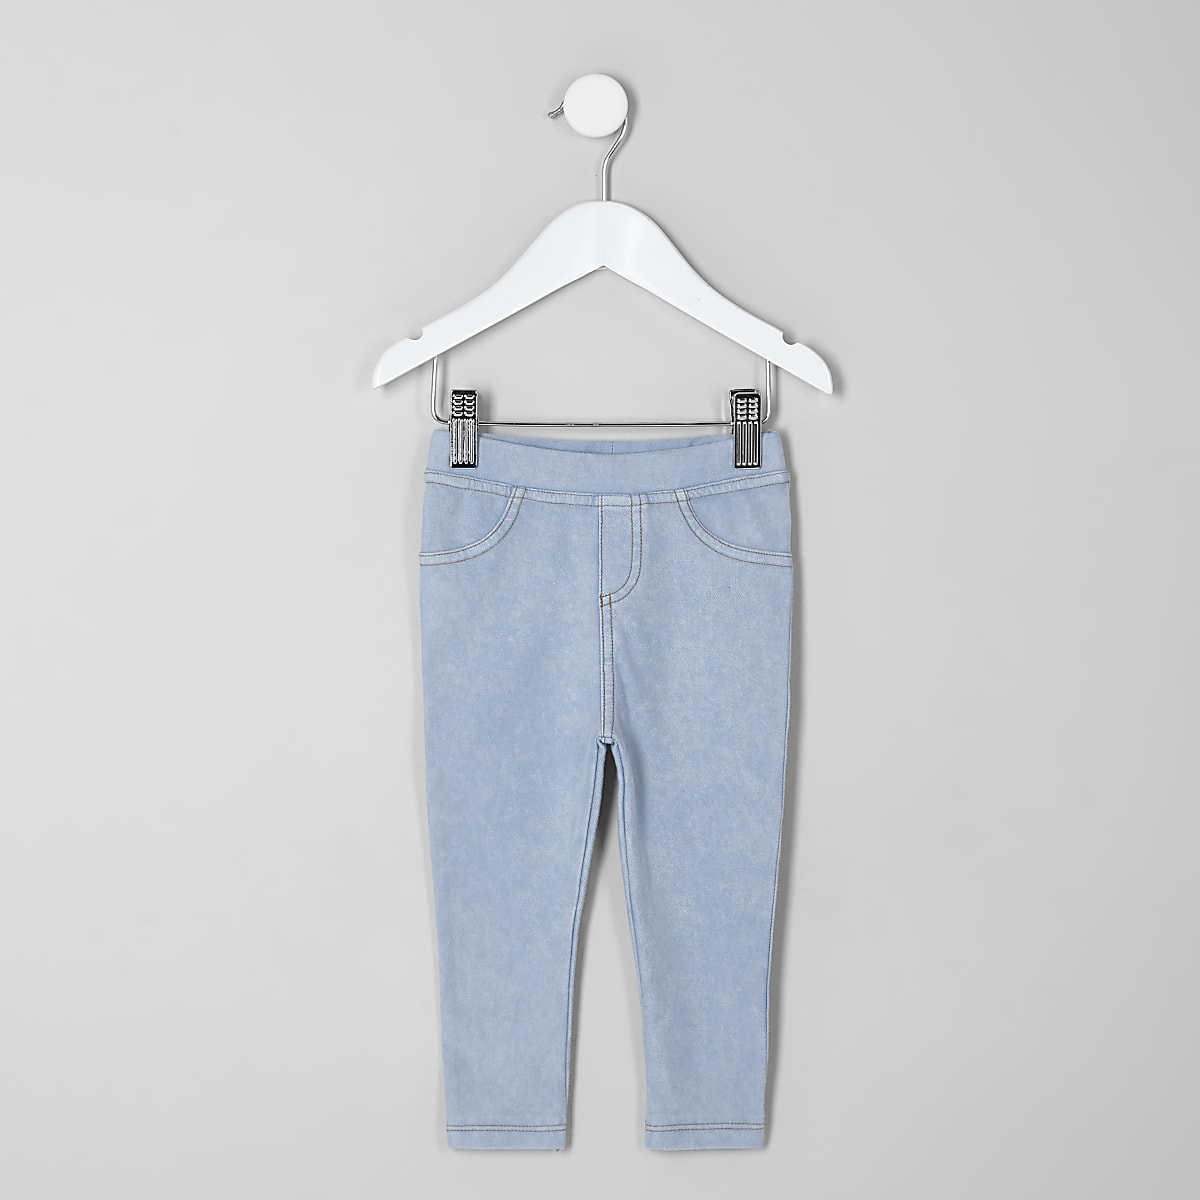 Jeans-Leggings in heller Waschung